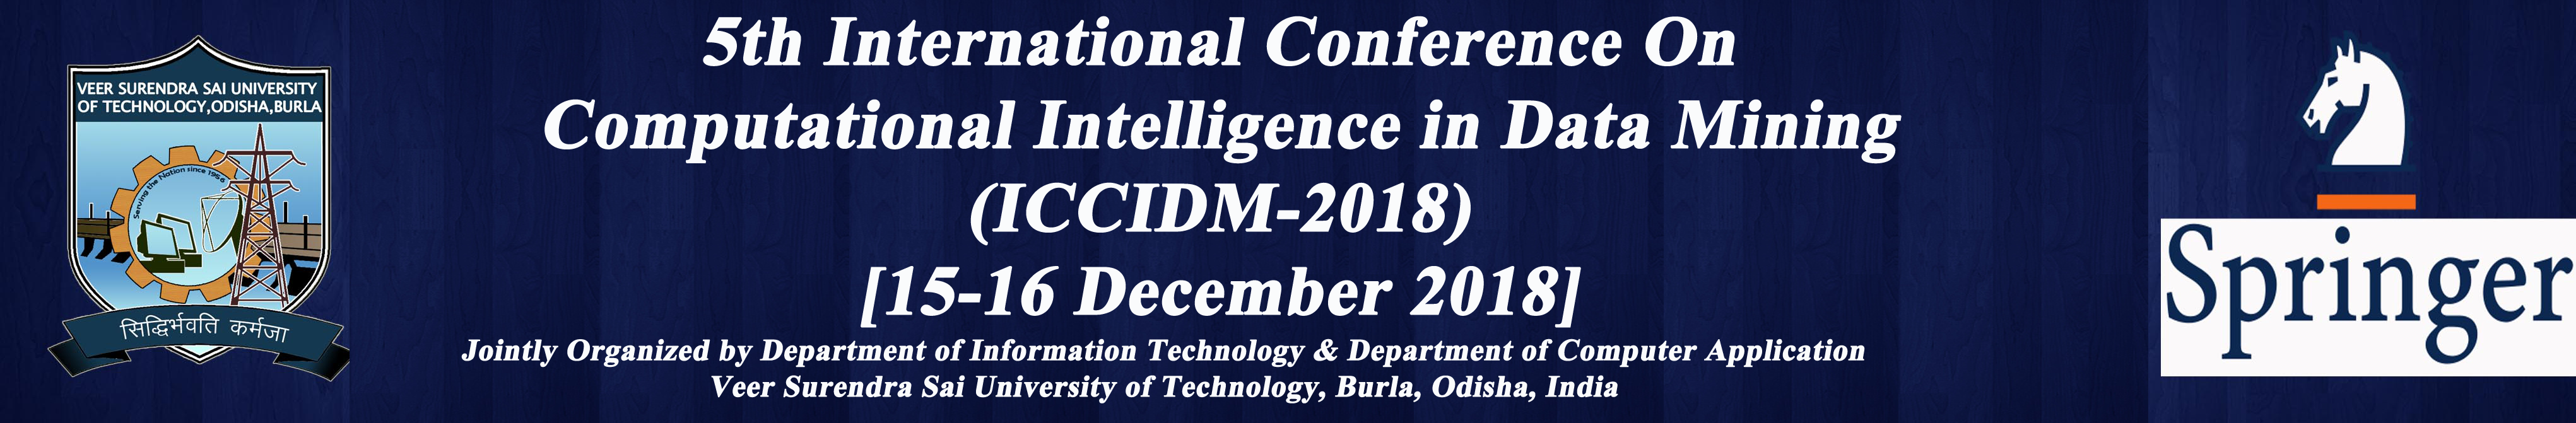 International Conference on Computational Intelligence on Data Mining